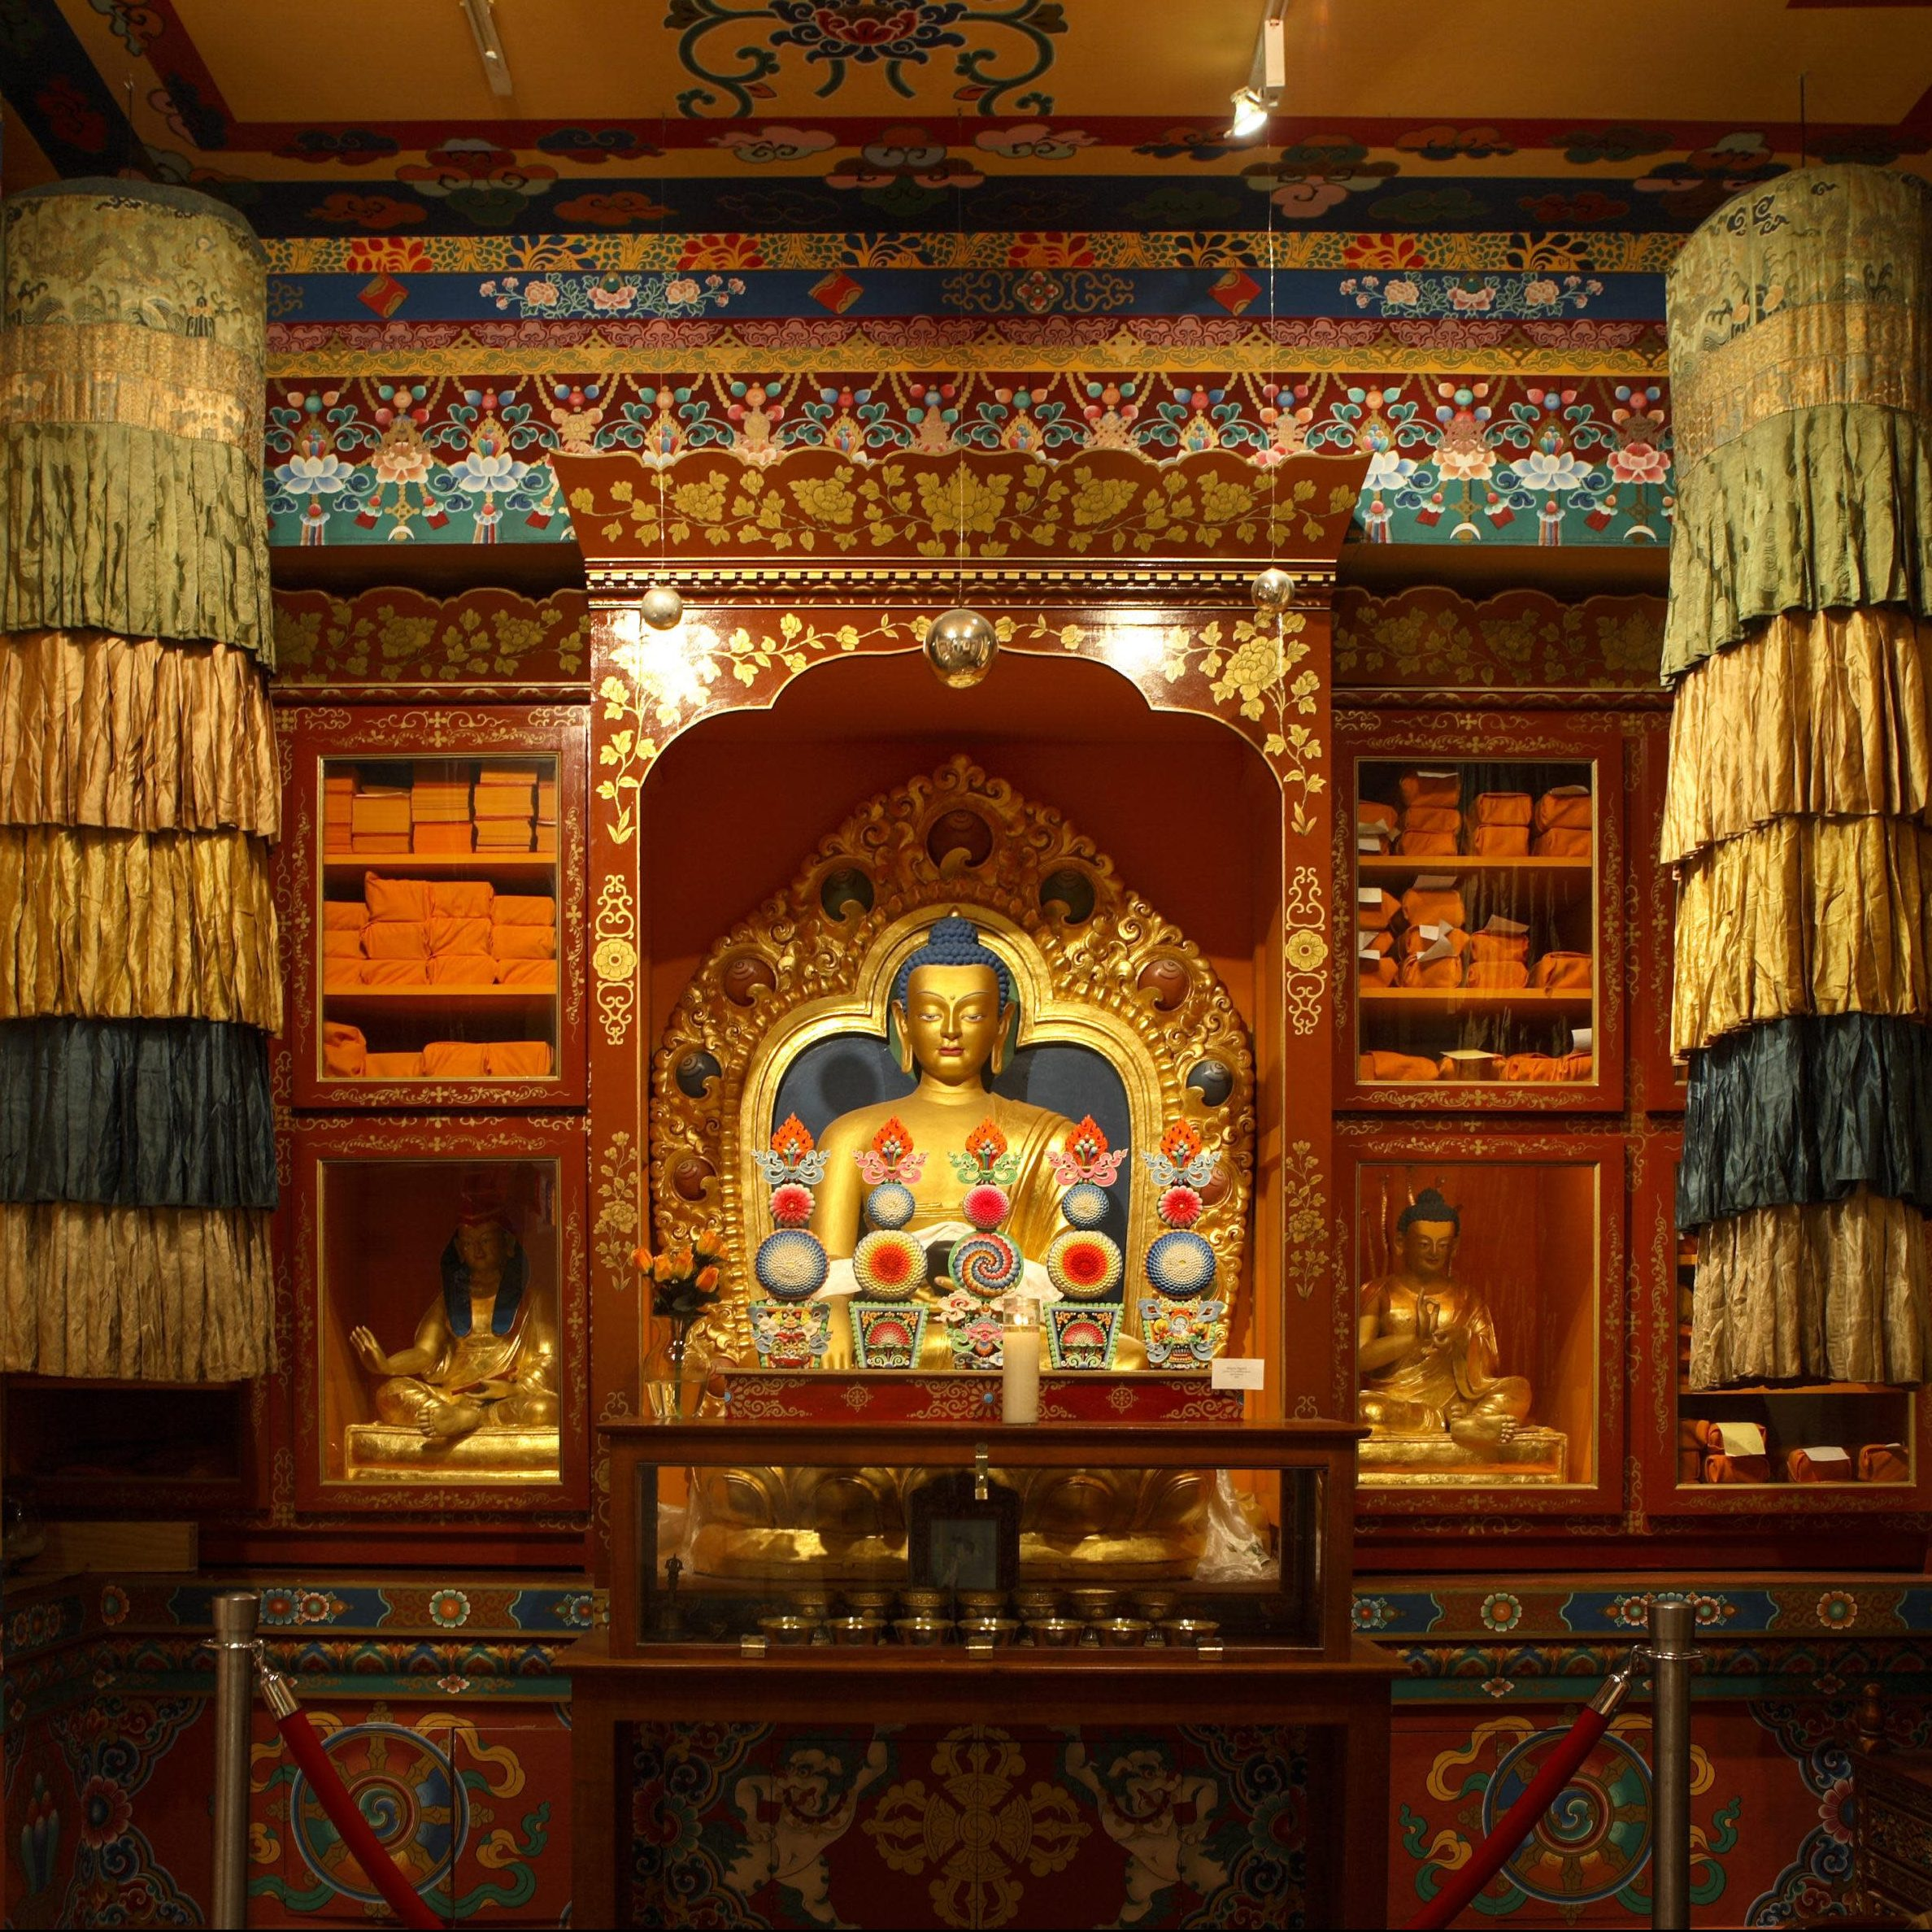 tibet house francine daveta 178 ad16e752 db5d ba4d 7bb354ffaaac18be scaled e1601649616580 20 Things You Didn't Know About Richard Gere